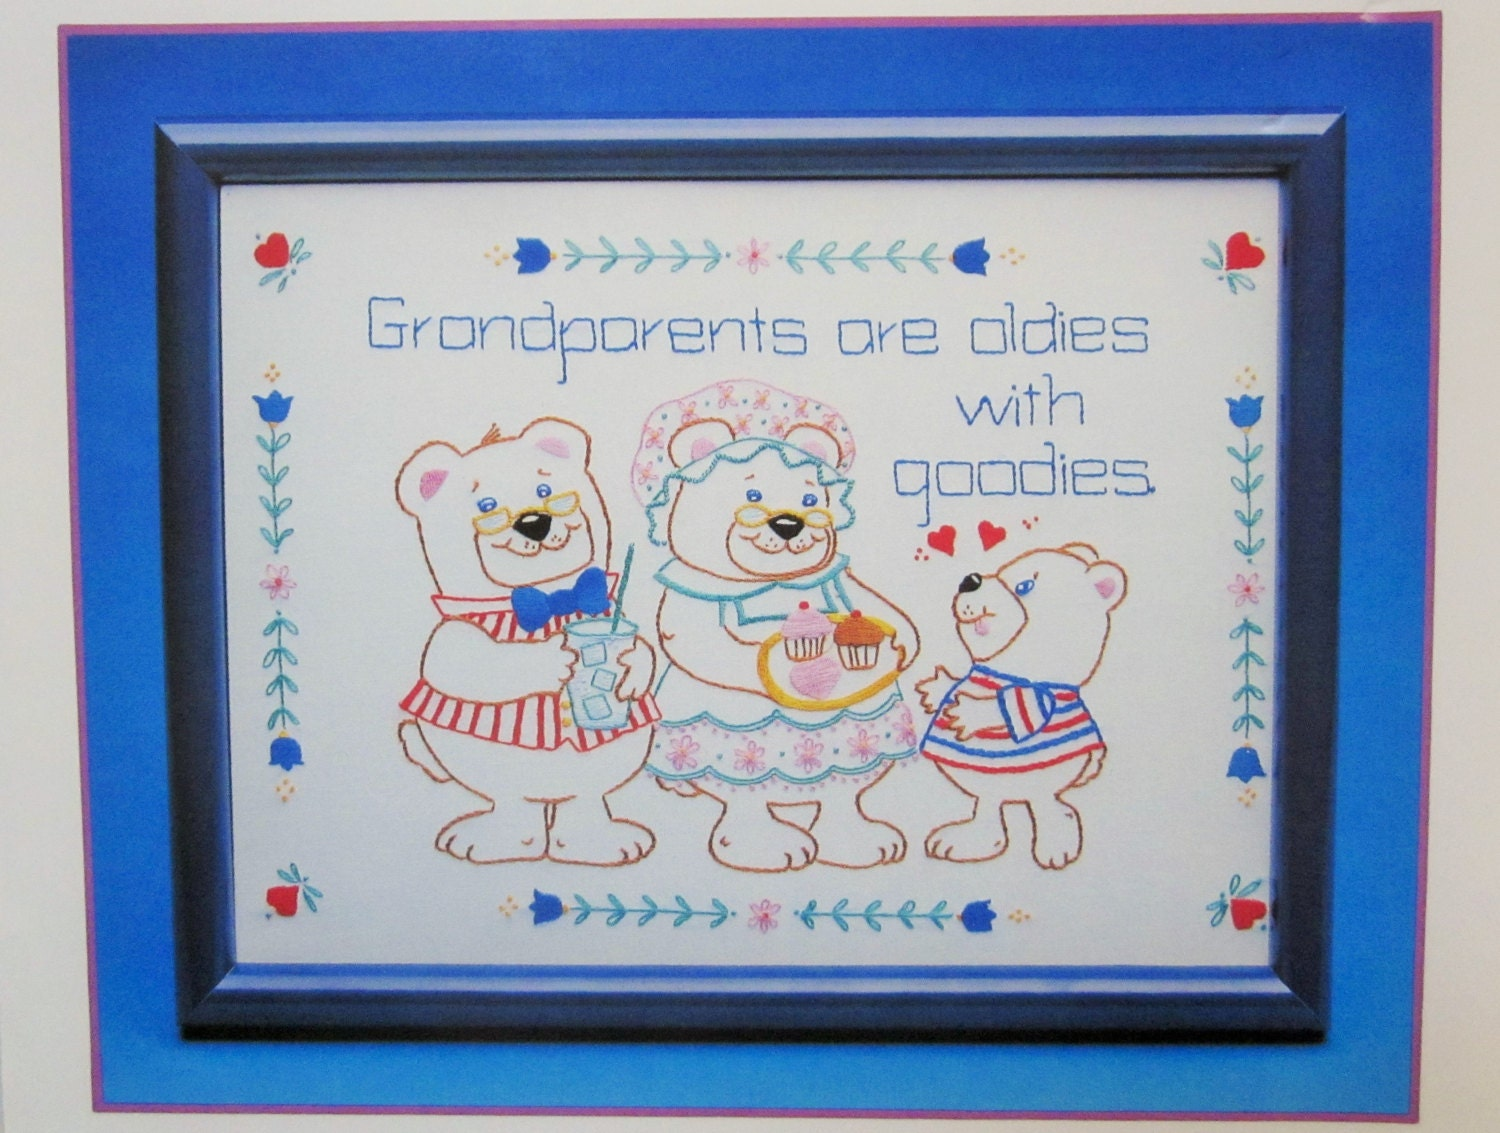 Grandparents stichery embroidery kit currents from